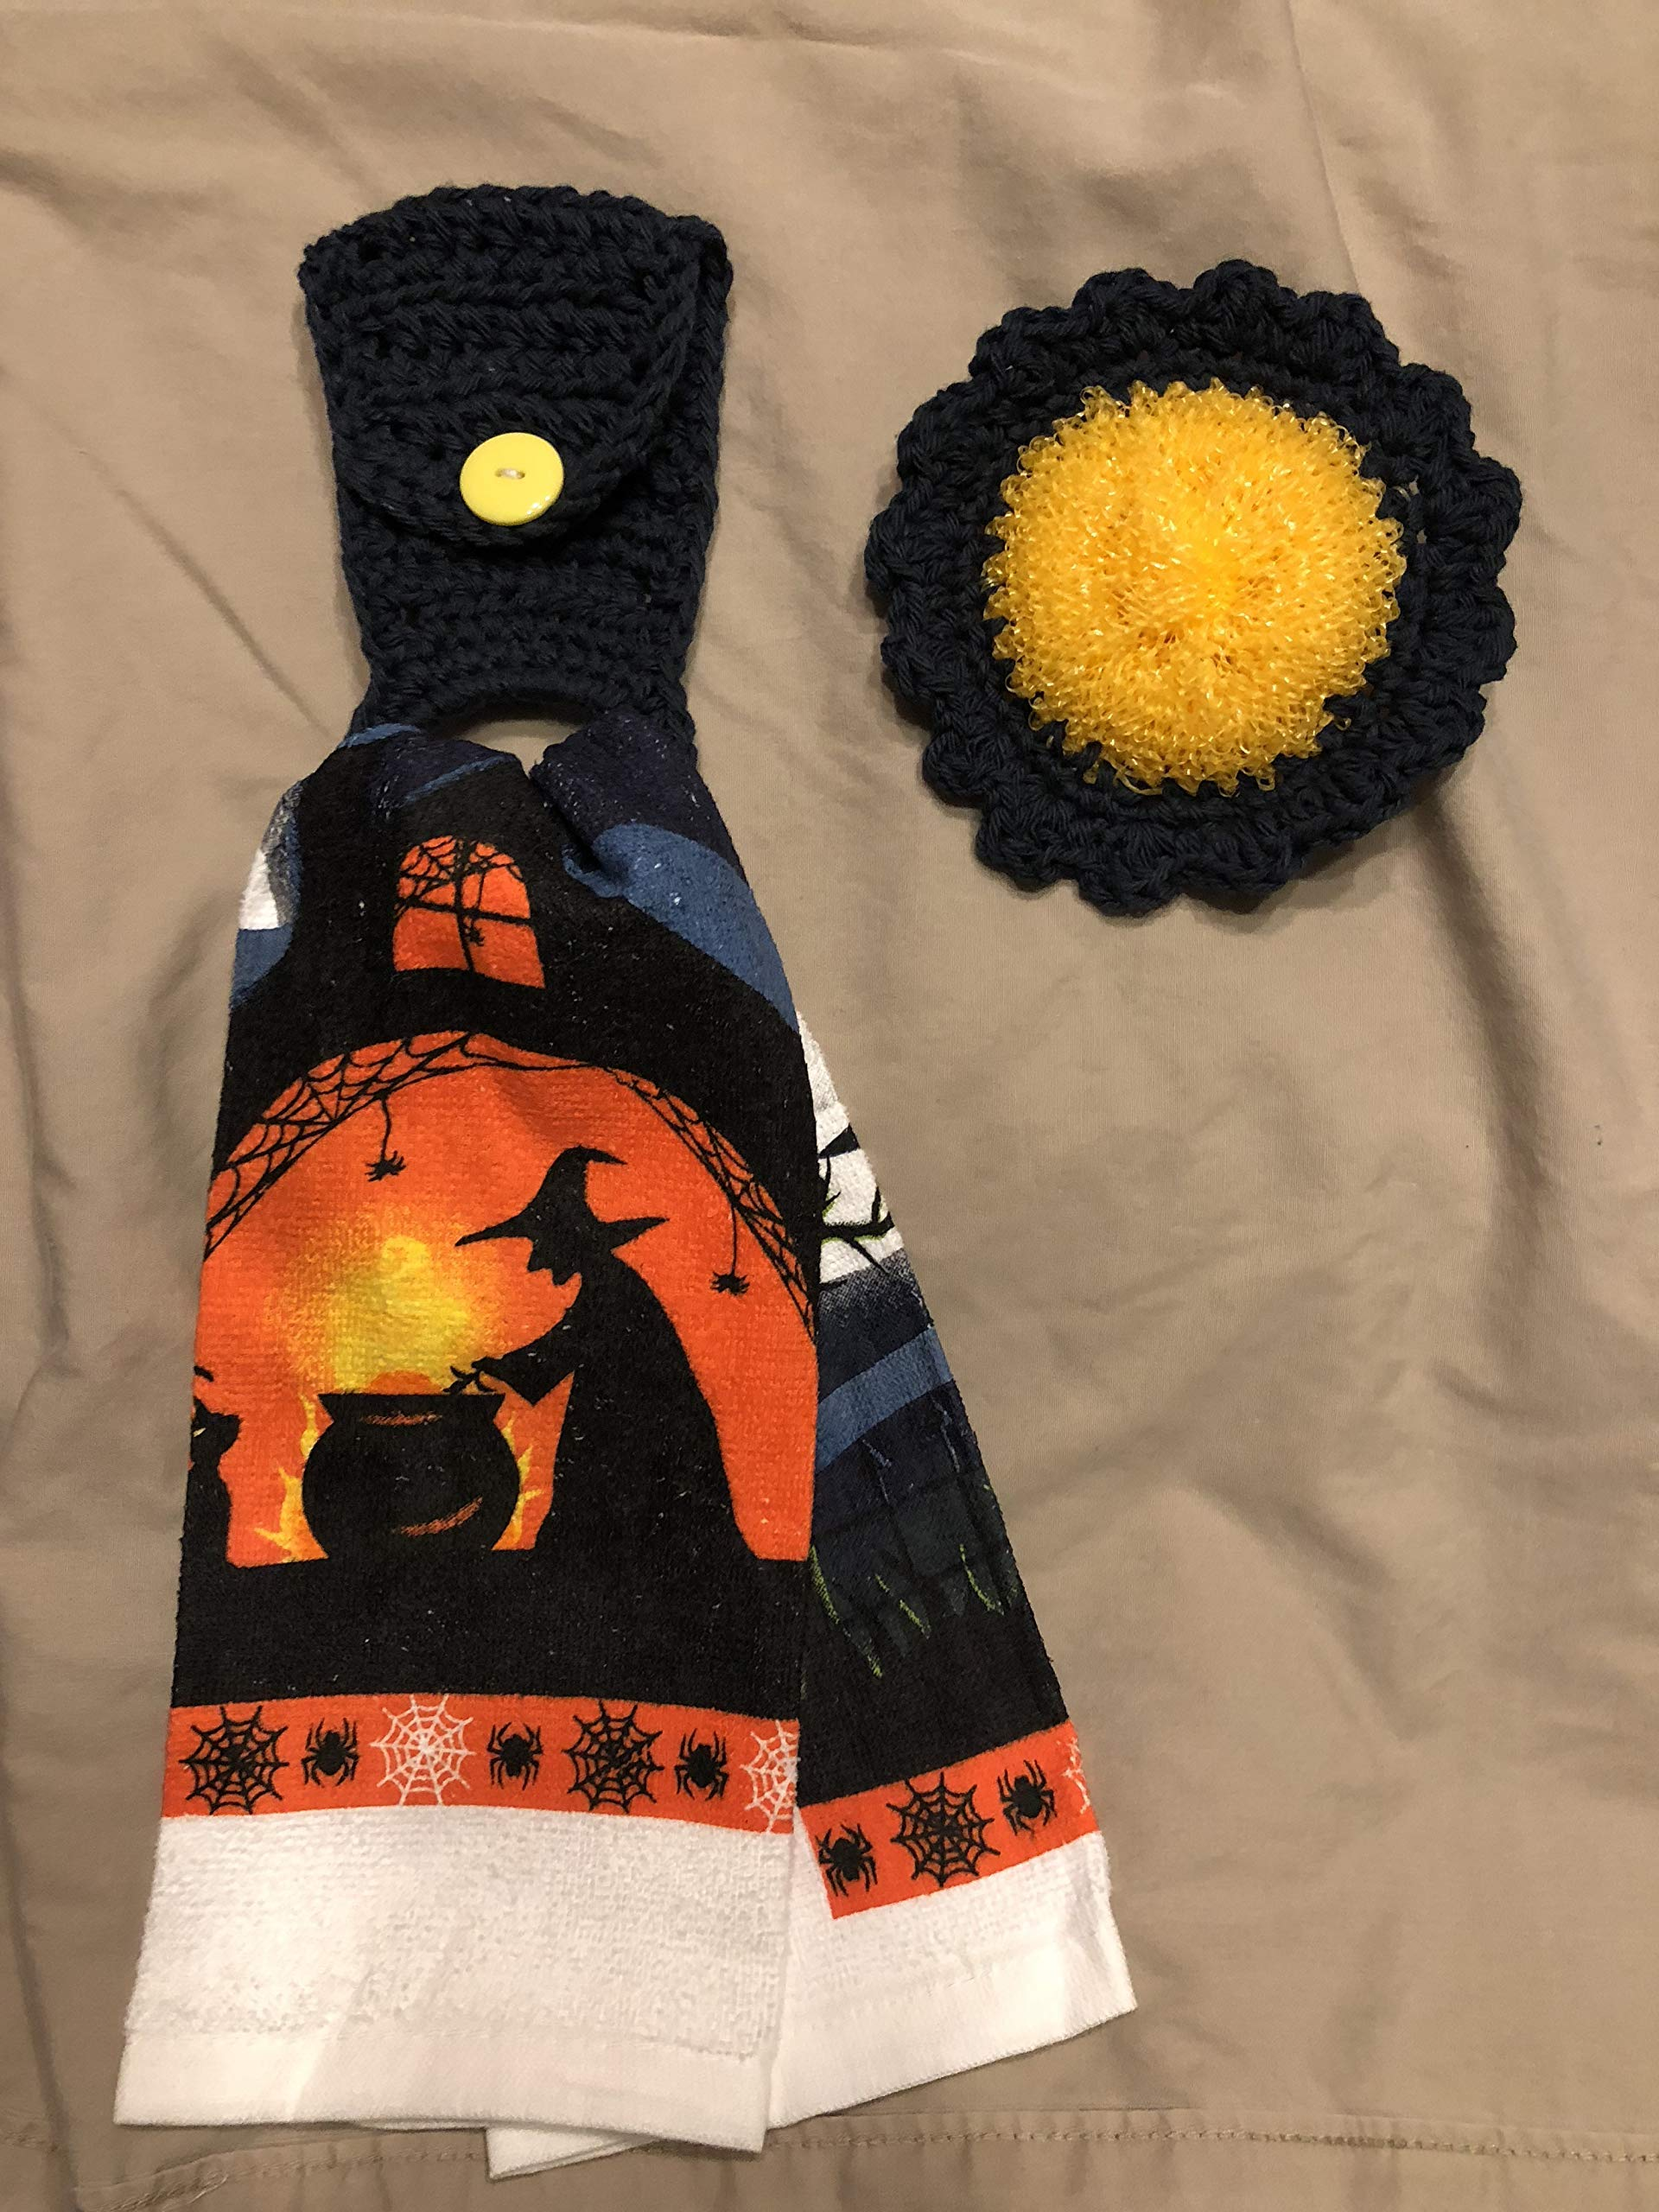 Free ship to USA - 3 piece set - Halloween Witch's Brew - 1 CROCHET Plastic Scrubber, Towel holder & KITCHEN hand TOWEL light weight terry cloth - Black 100% cotton yarn